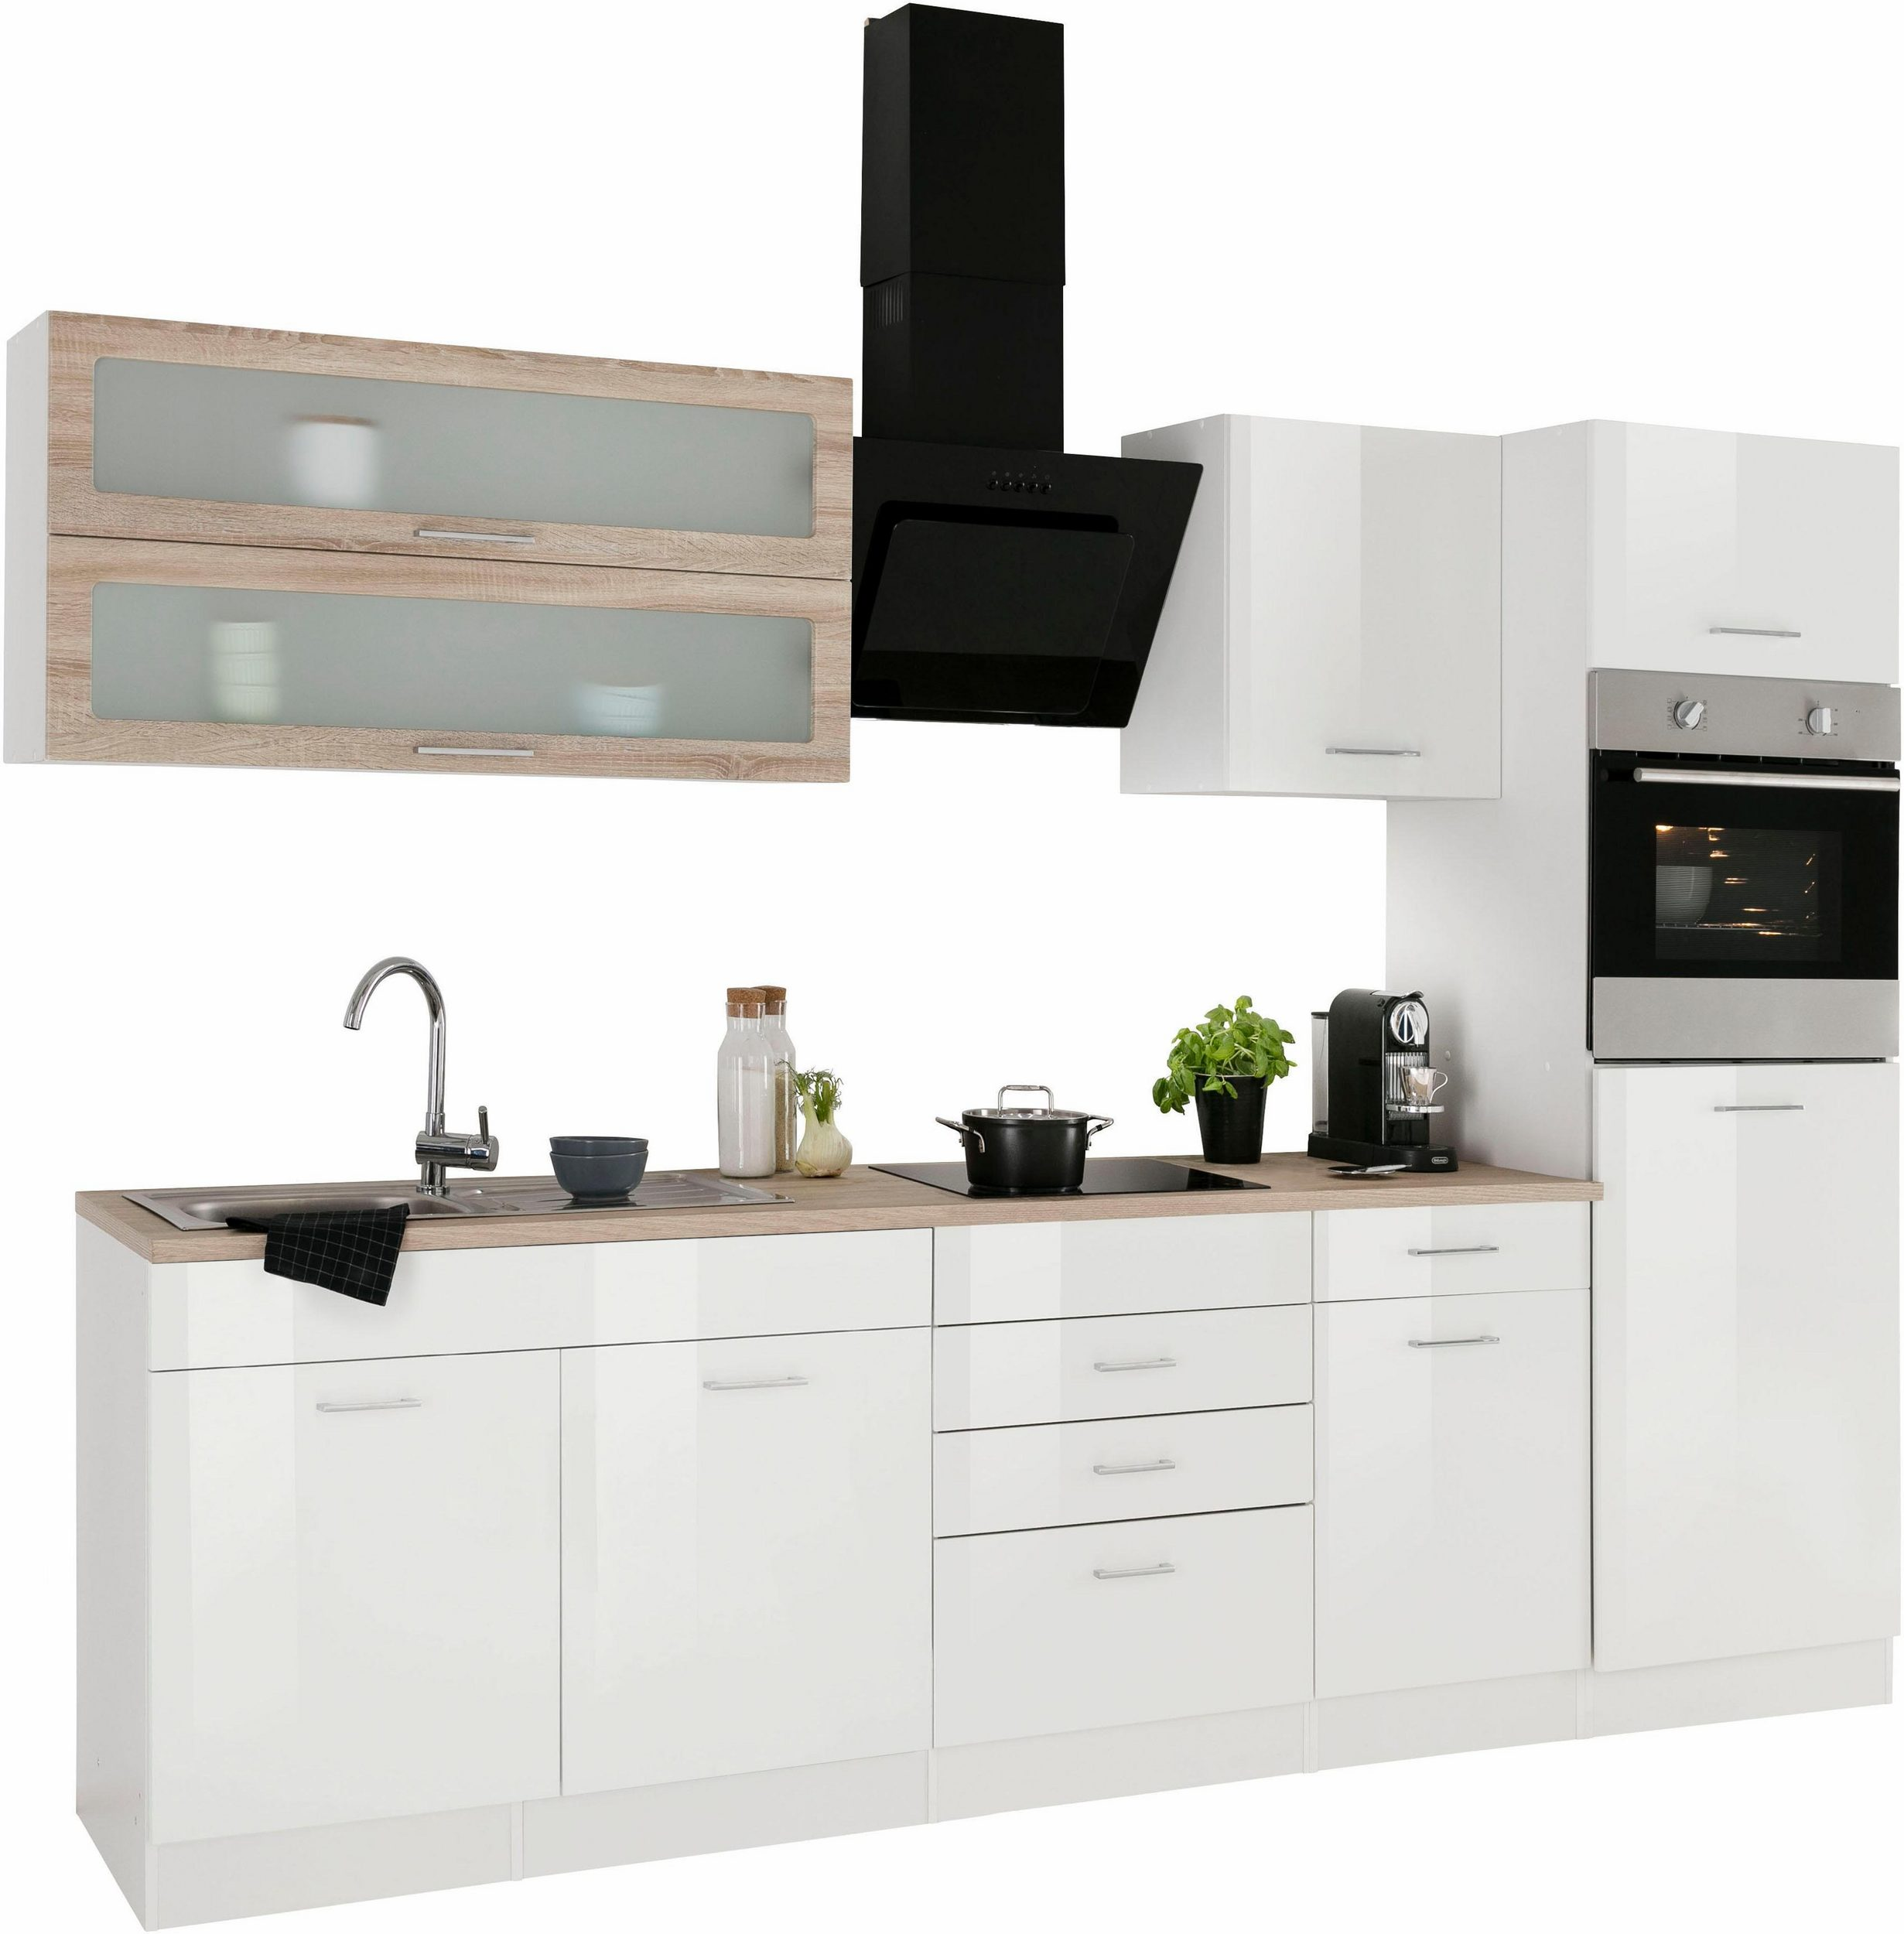 22387294 Vimle Kitchen Cabinets HELD khmer in phnom penh cambodia